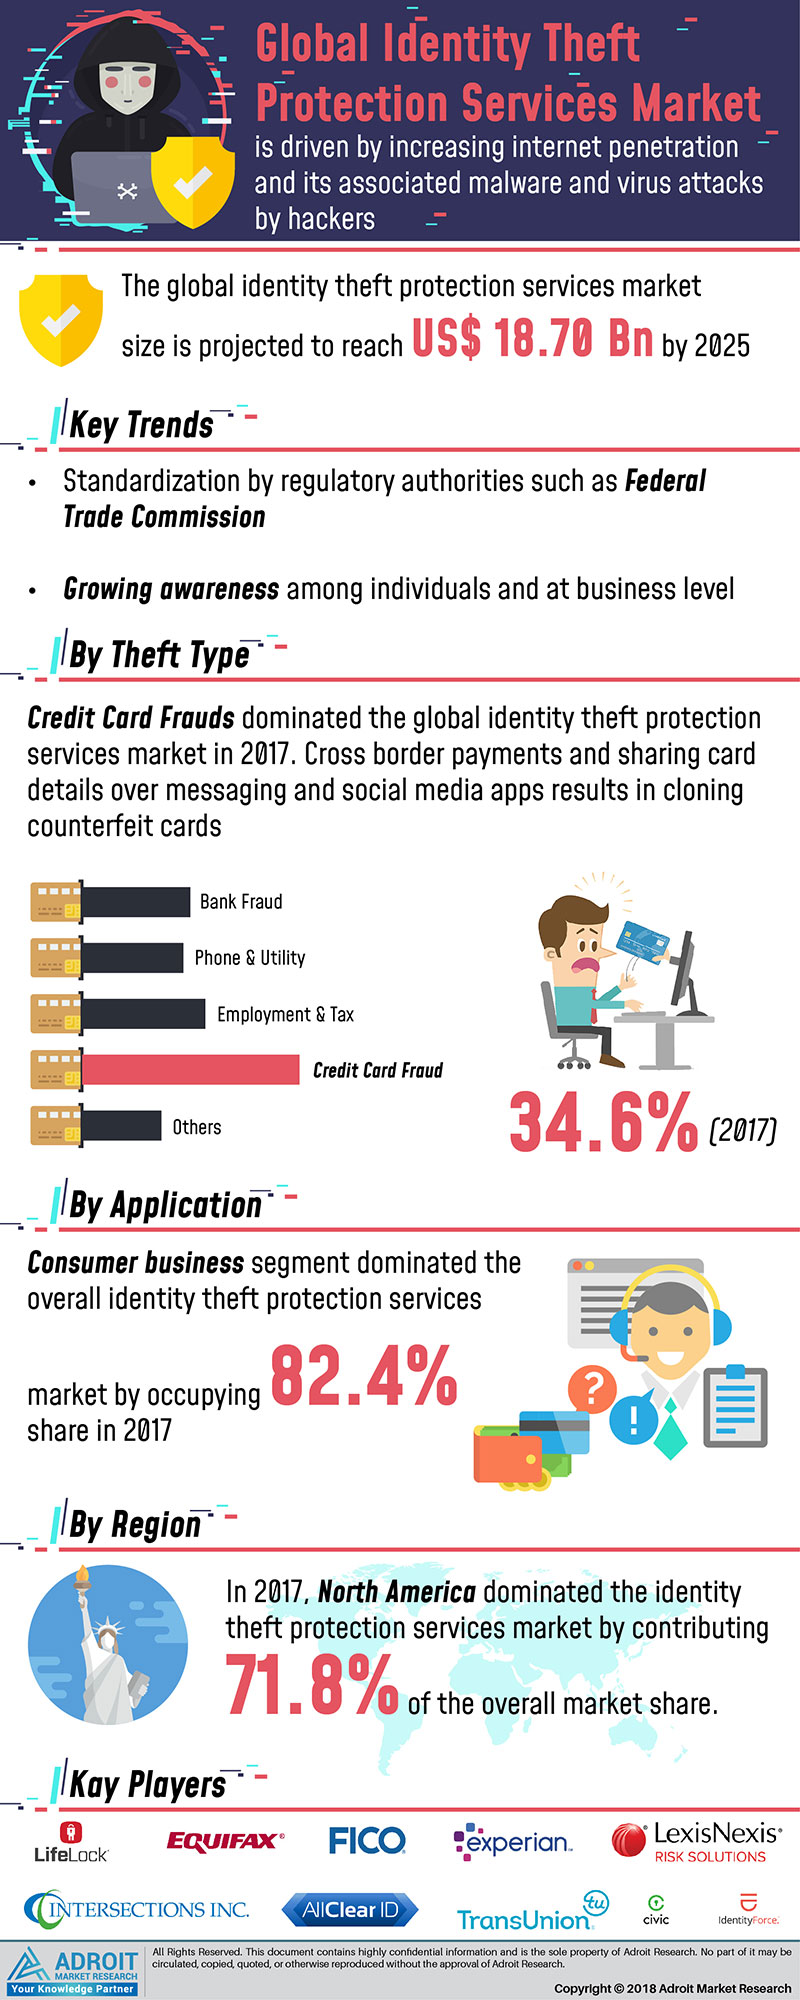 Global Identity Theft Protection Services Market Size By Theft Type, Application, Region and Forecast 2018 to 2025